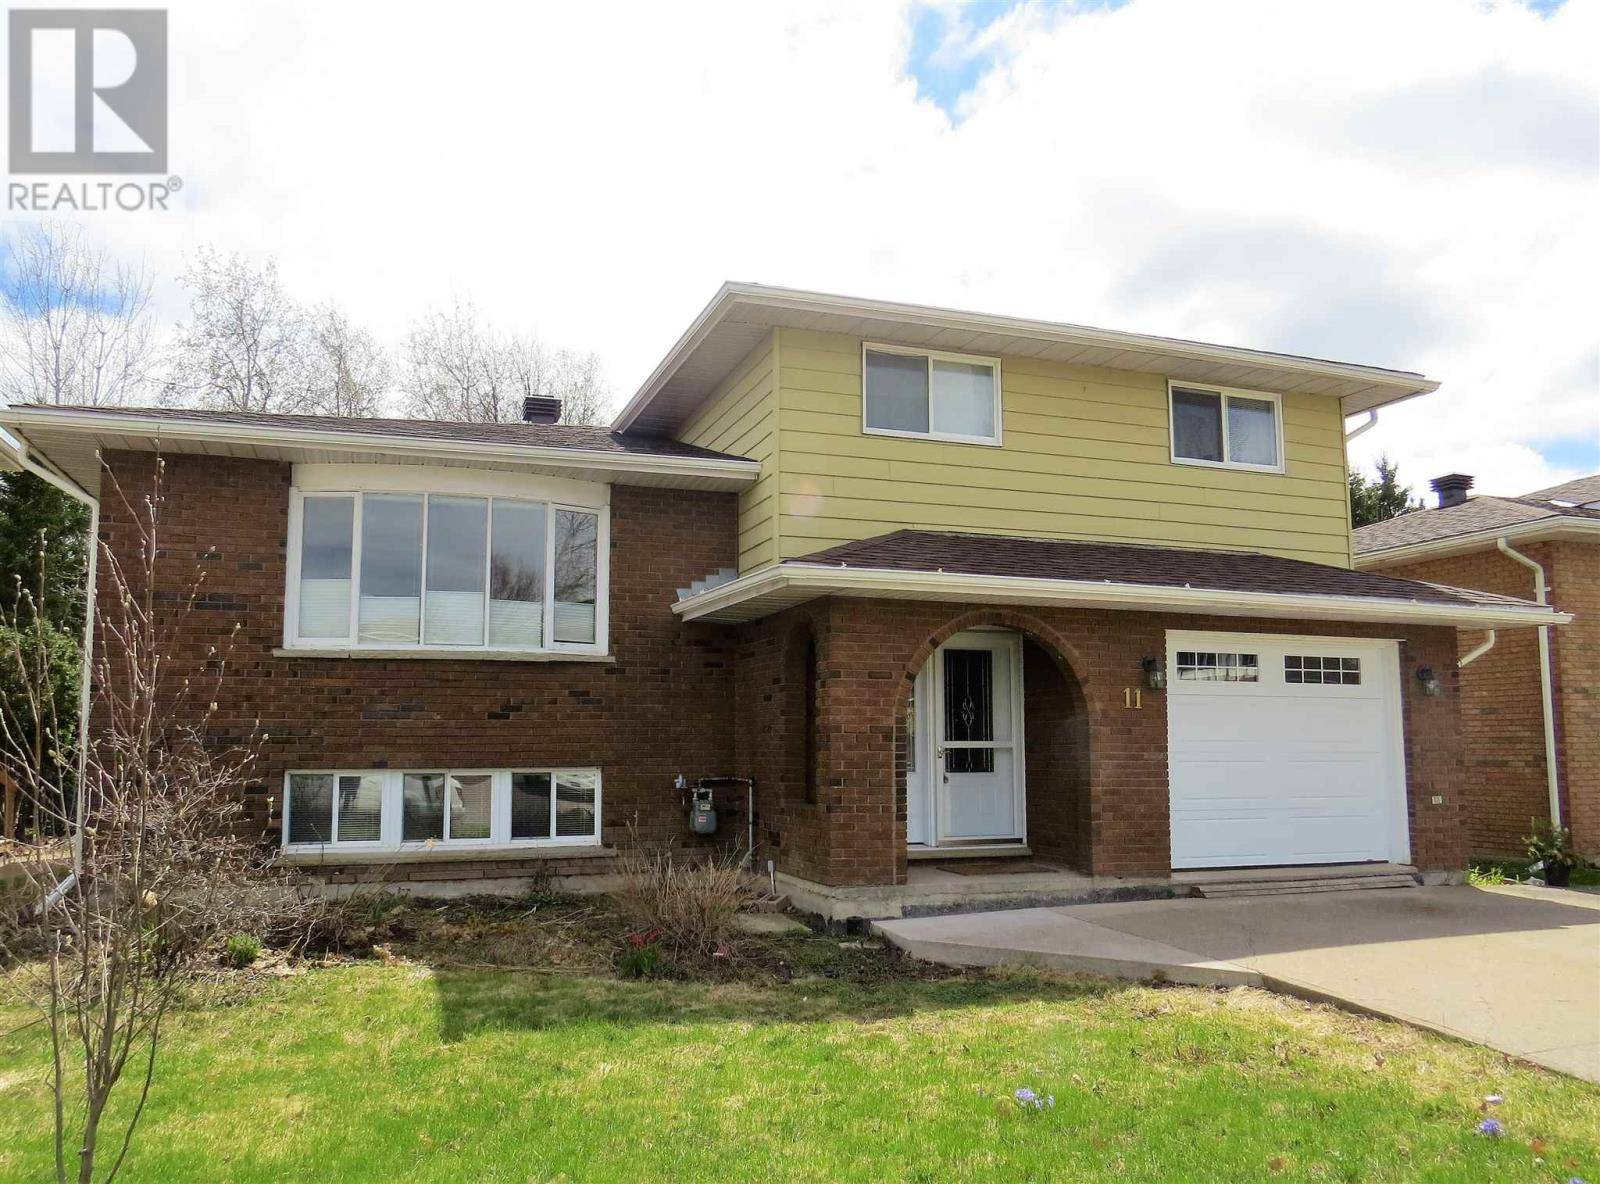 House for sale at 11 Golf Range Cres Sault Ste Marie Ontario - MLS: SM127120